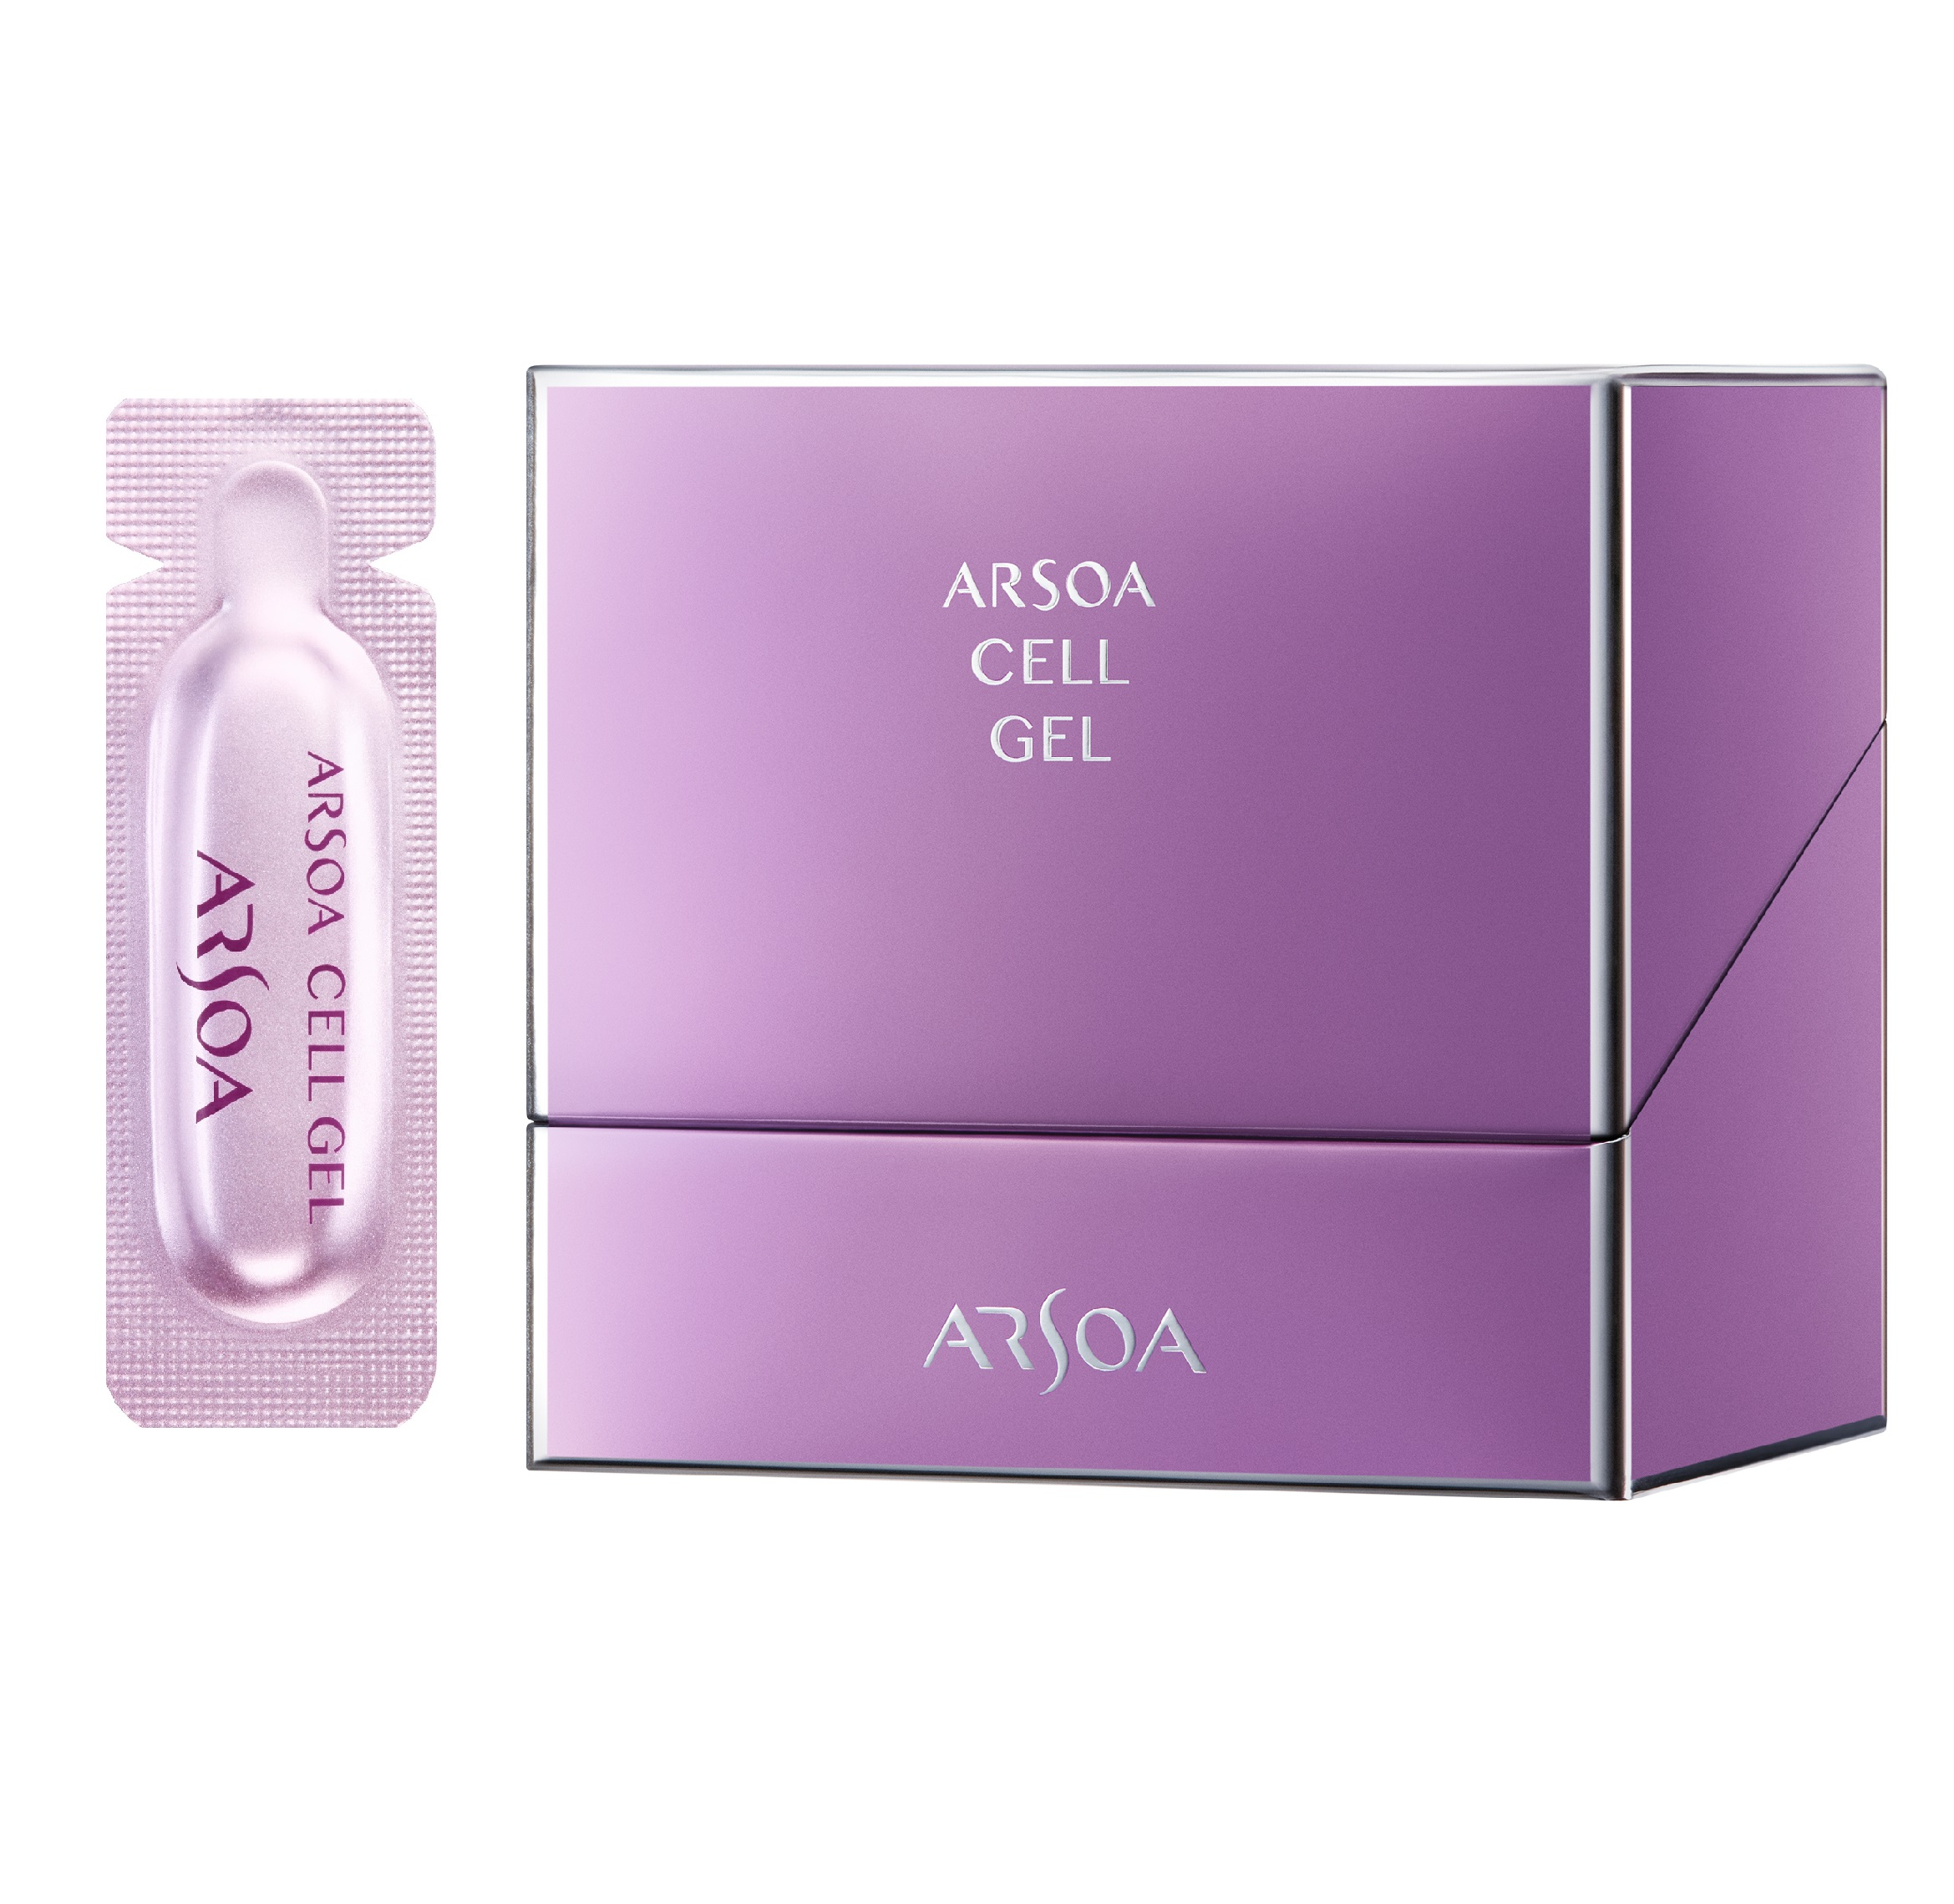 ARSOA CELL GEL (Beauty Gel Oil)